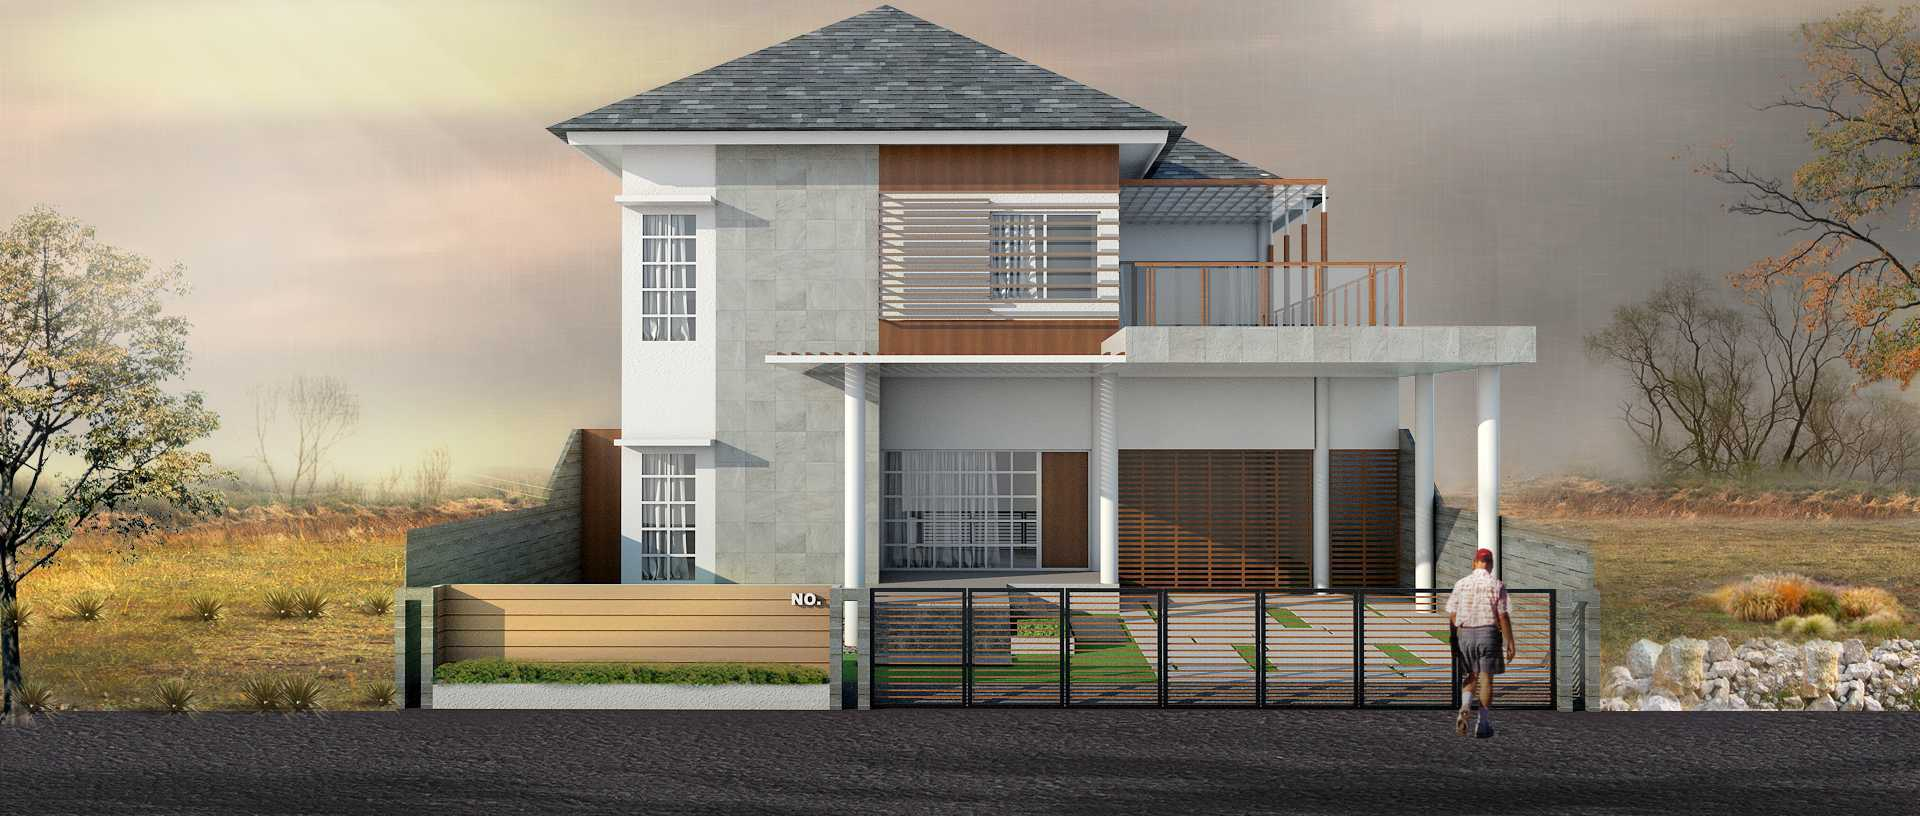 Future Architects Studio Mr. A House In Pontianak Pontianak, Indonesia Pontianak, Indonesia S1   29162